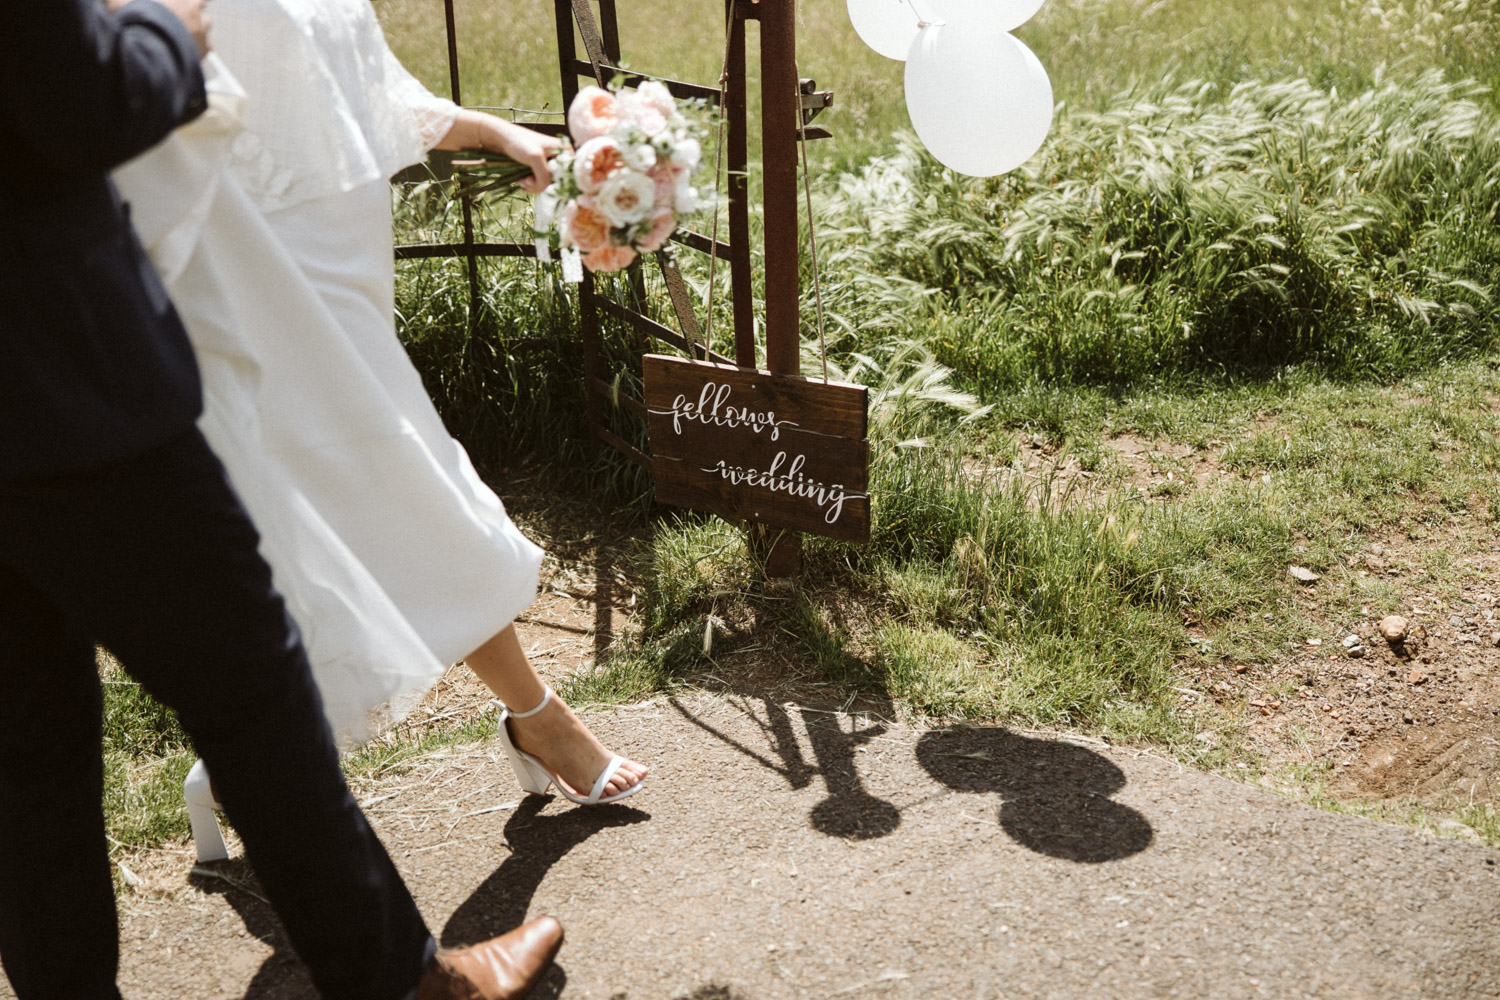 the newly weds walking past the entrance to the hidden valley